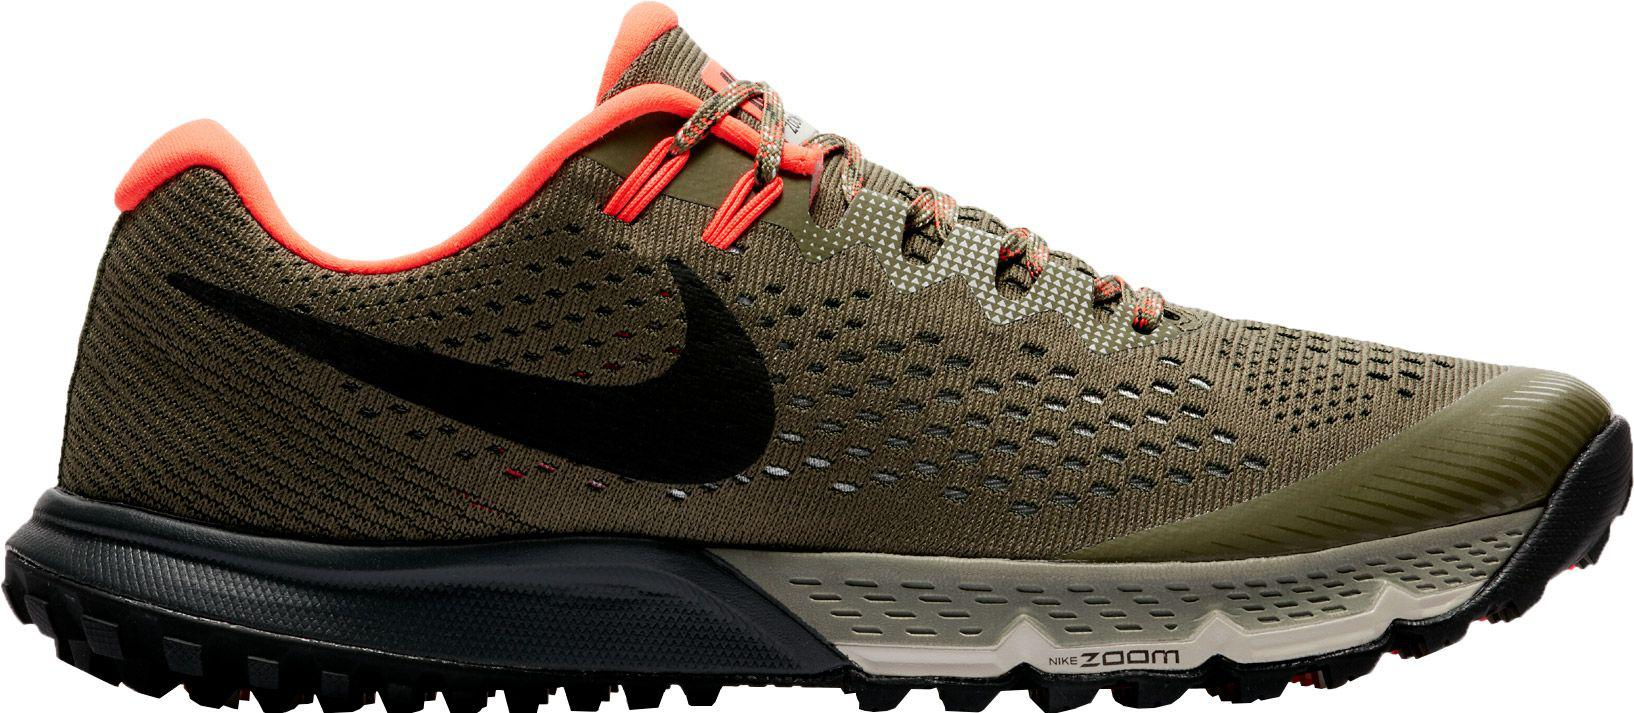 save off 0e5db 607c5 ... reduced nike multicolor air zoom terra kiger 4 trail running shoes for  men lyst fb6af b4f04